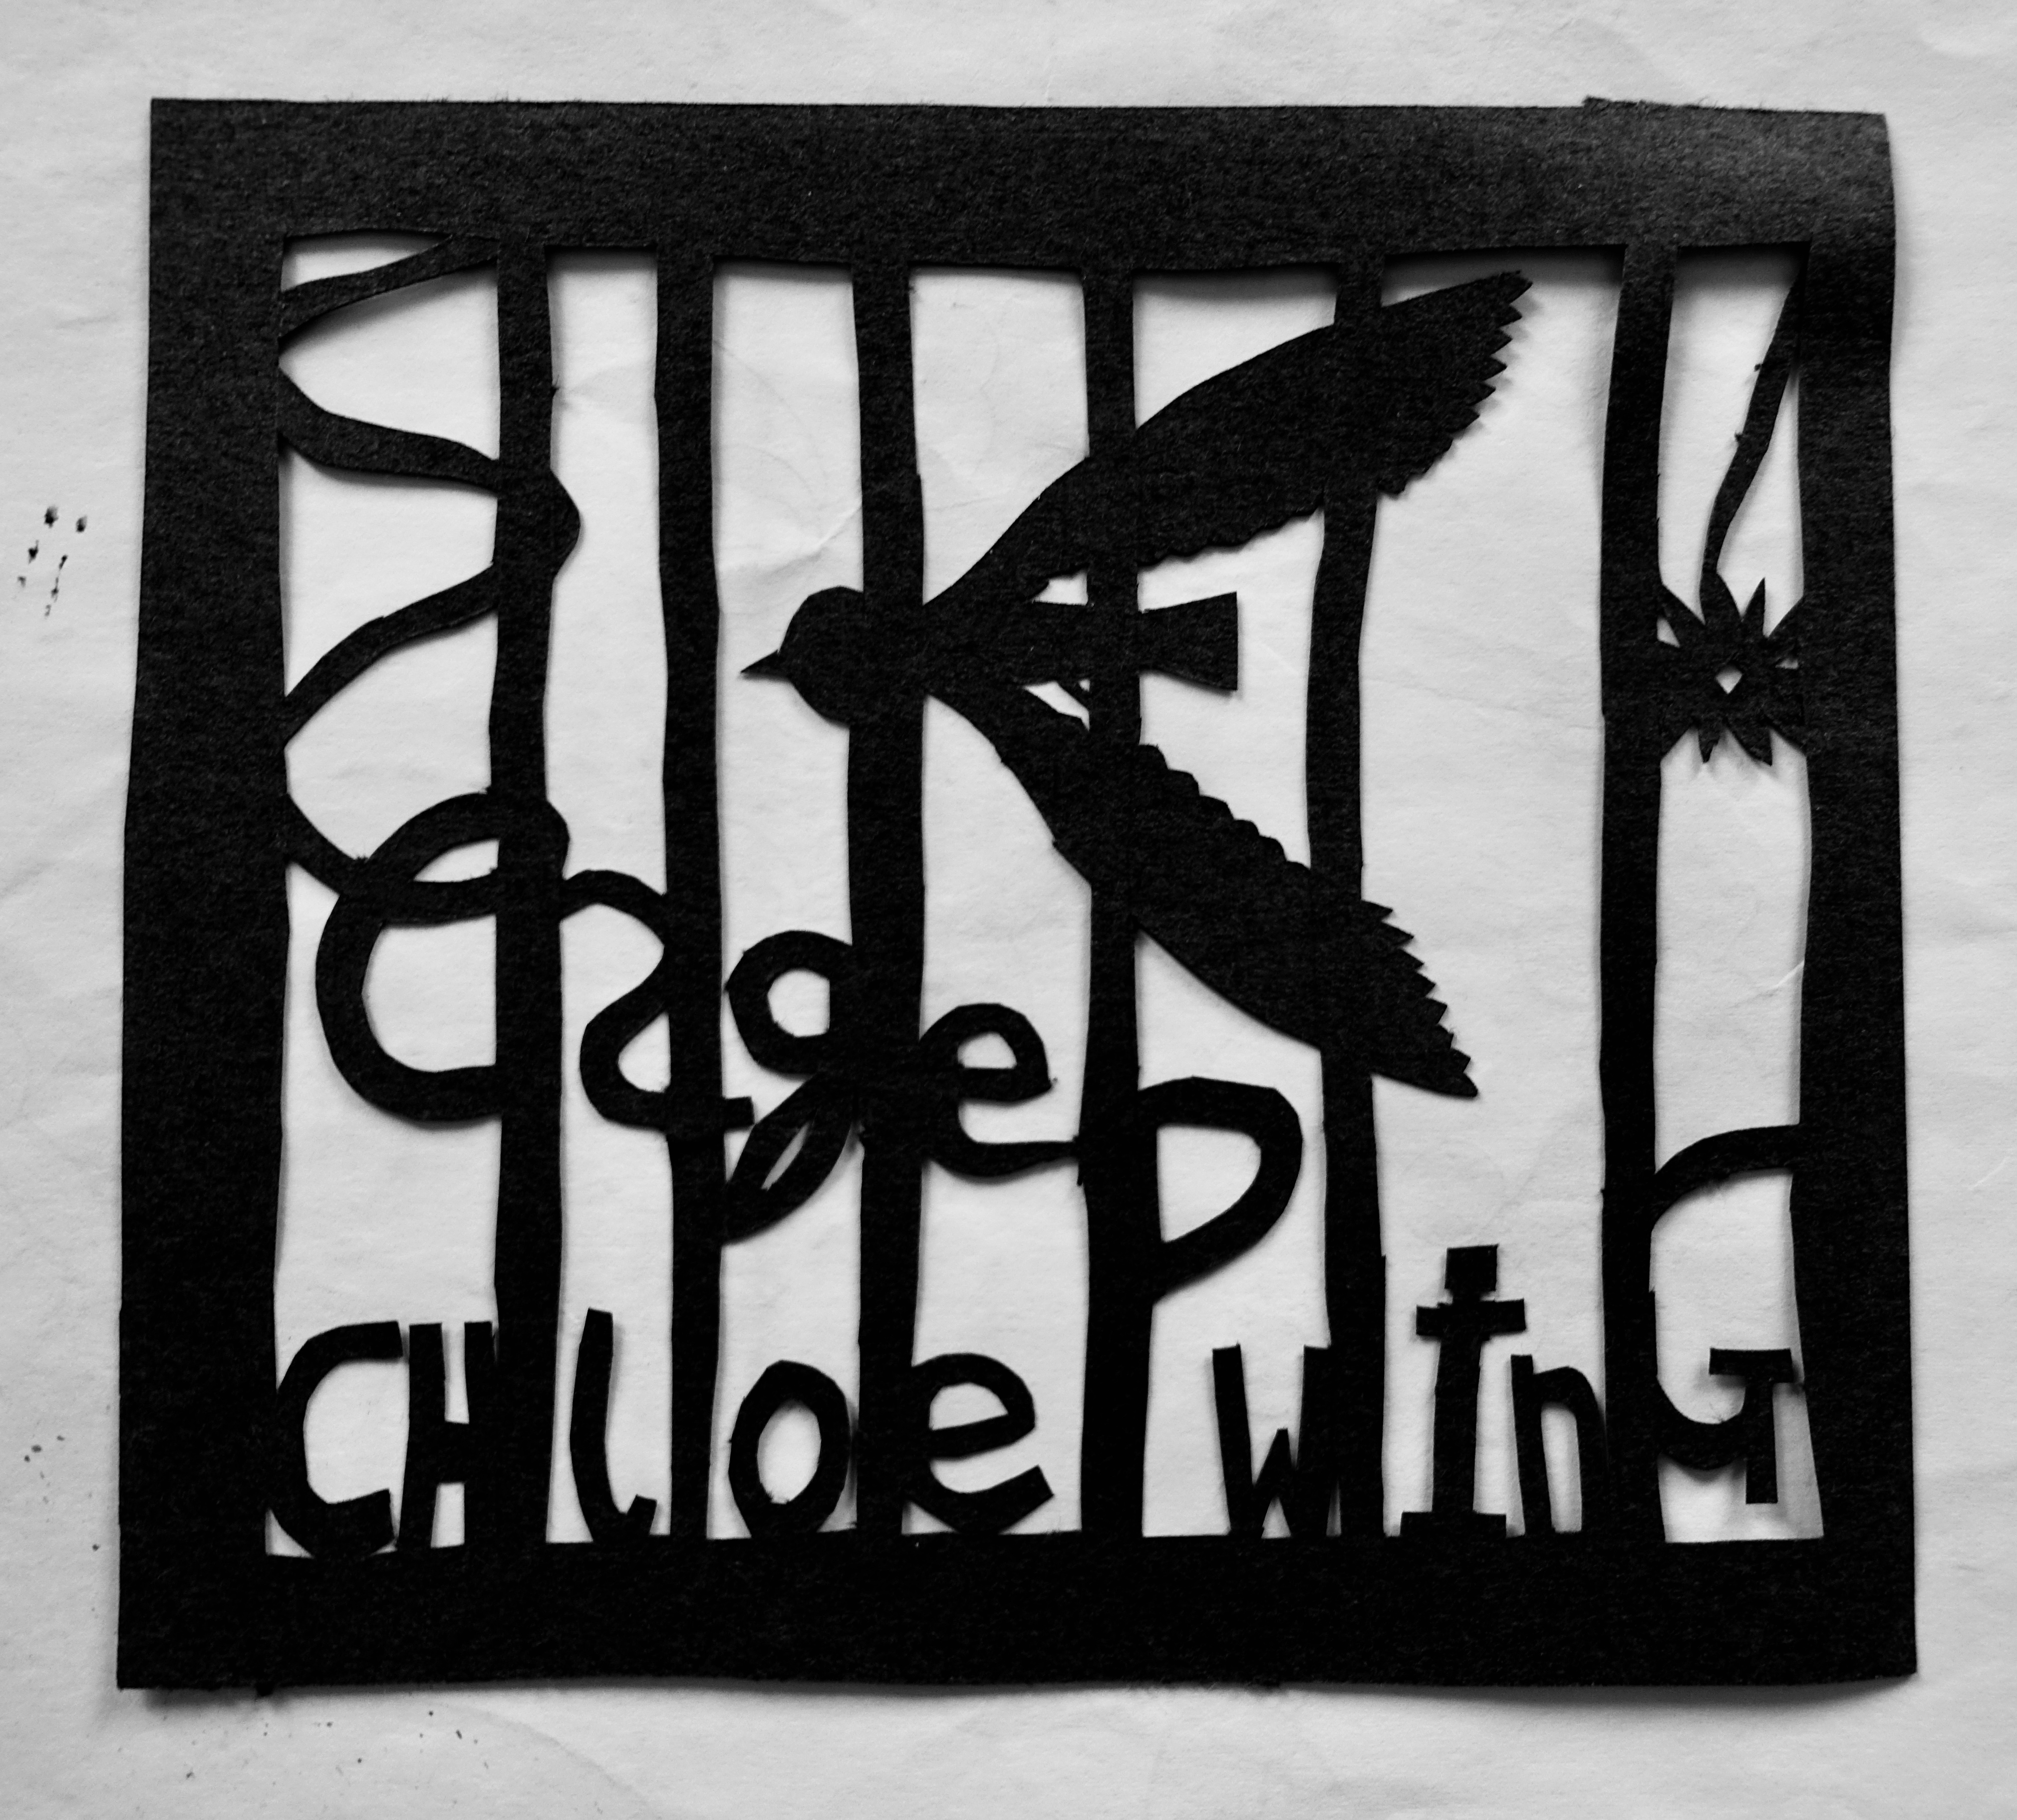 'Caged' concept album cover